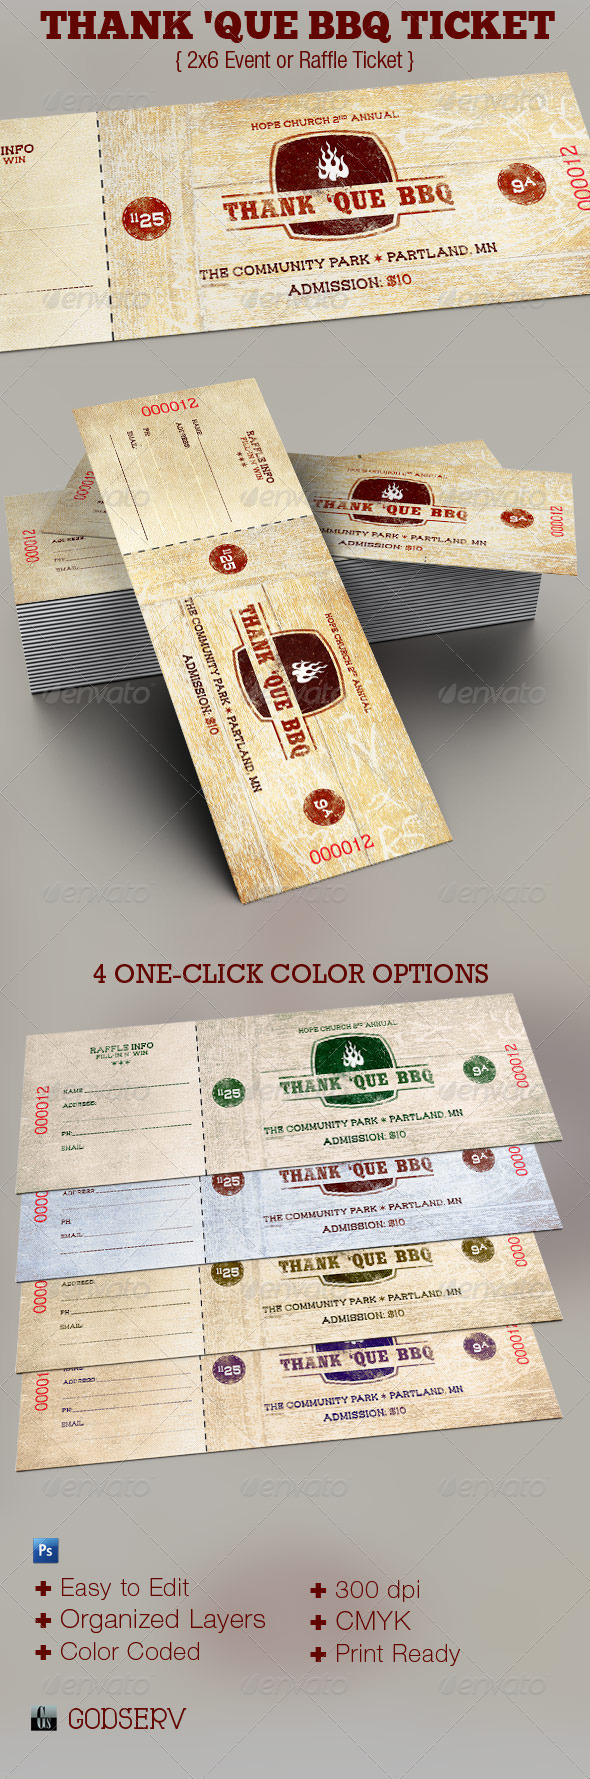 Thank que western bbq charity ticket template graphicriver for Bbq ticket template free